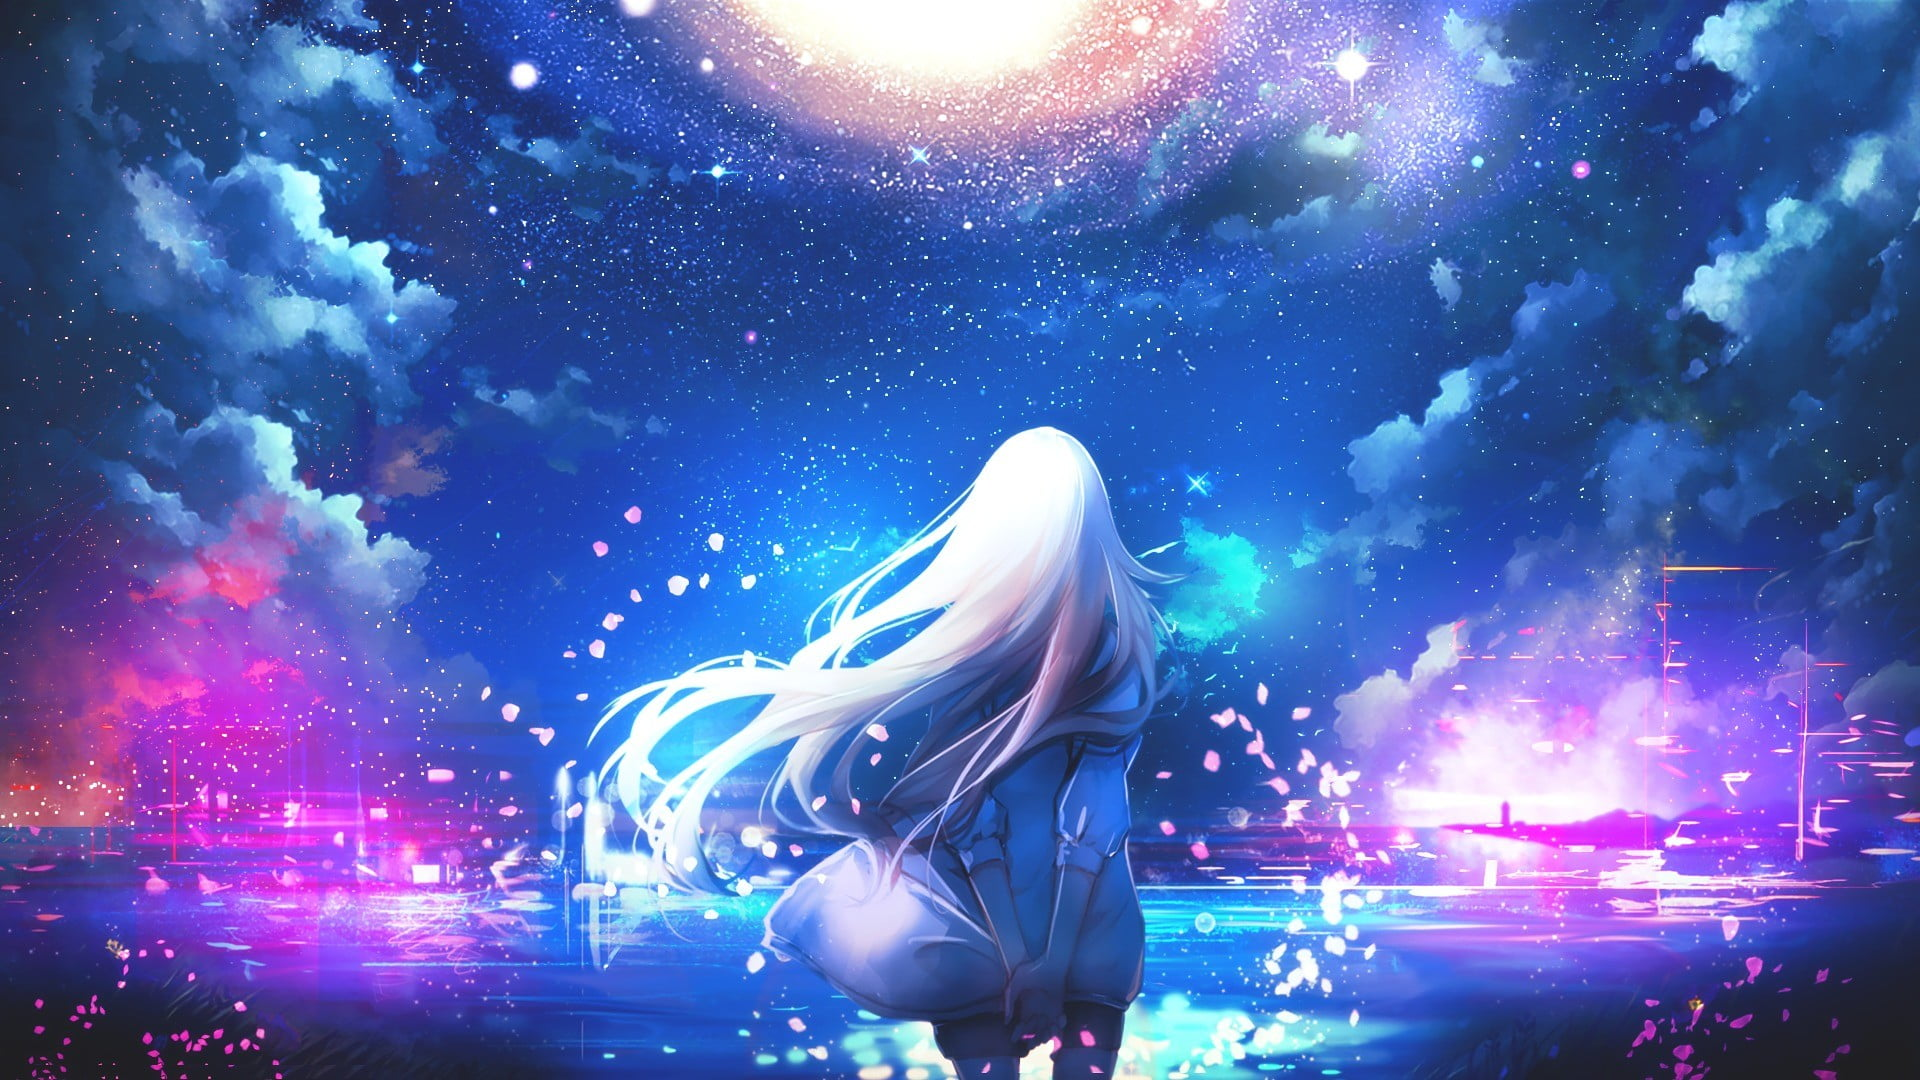 Free Download Girl Wallpaper For 360x640 White Haired Girl Anime Under Galaxy Sky Hd Wallpaper